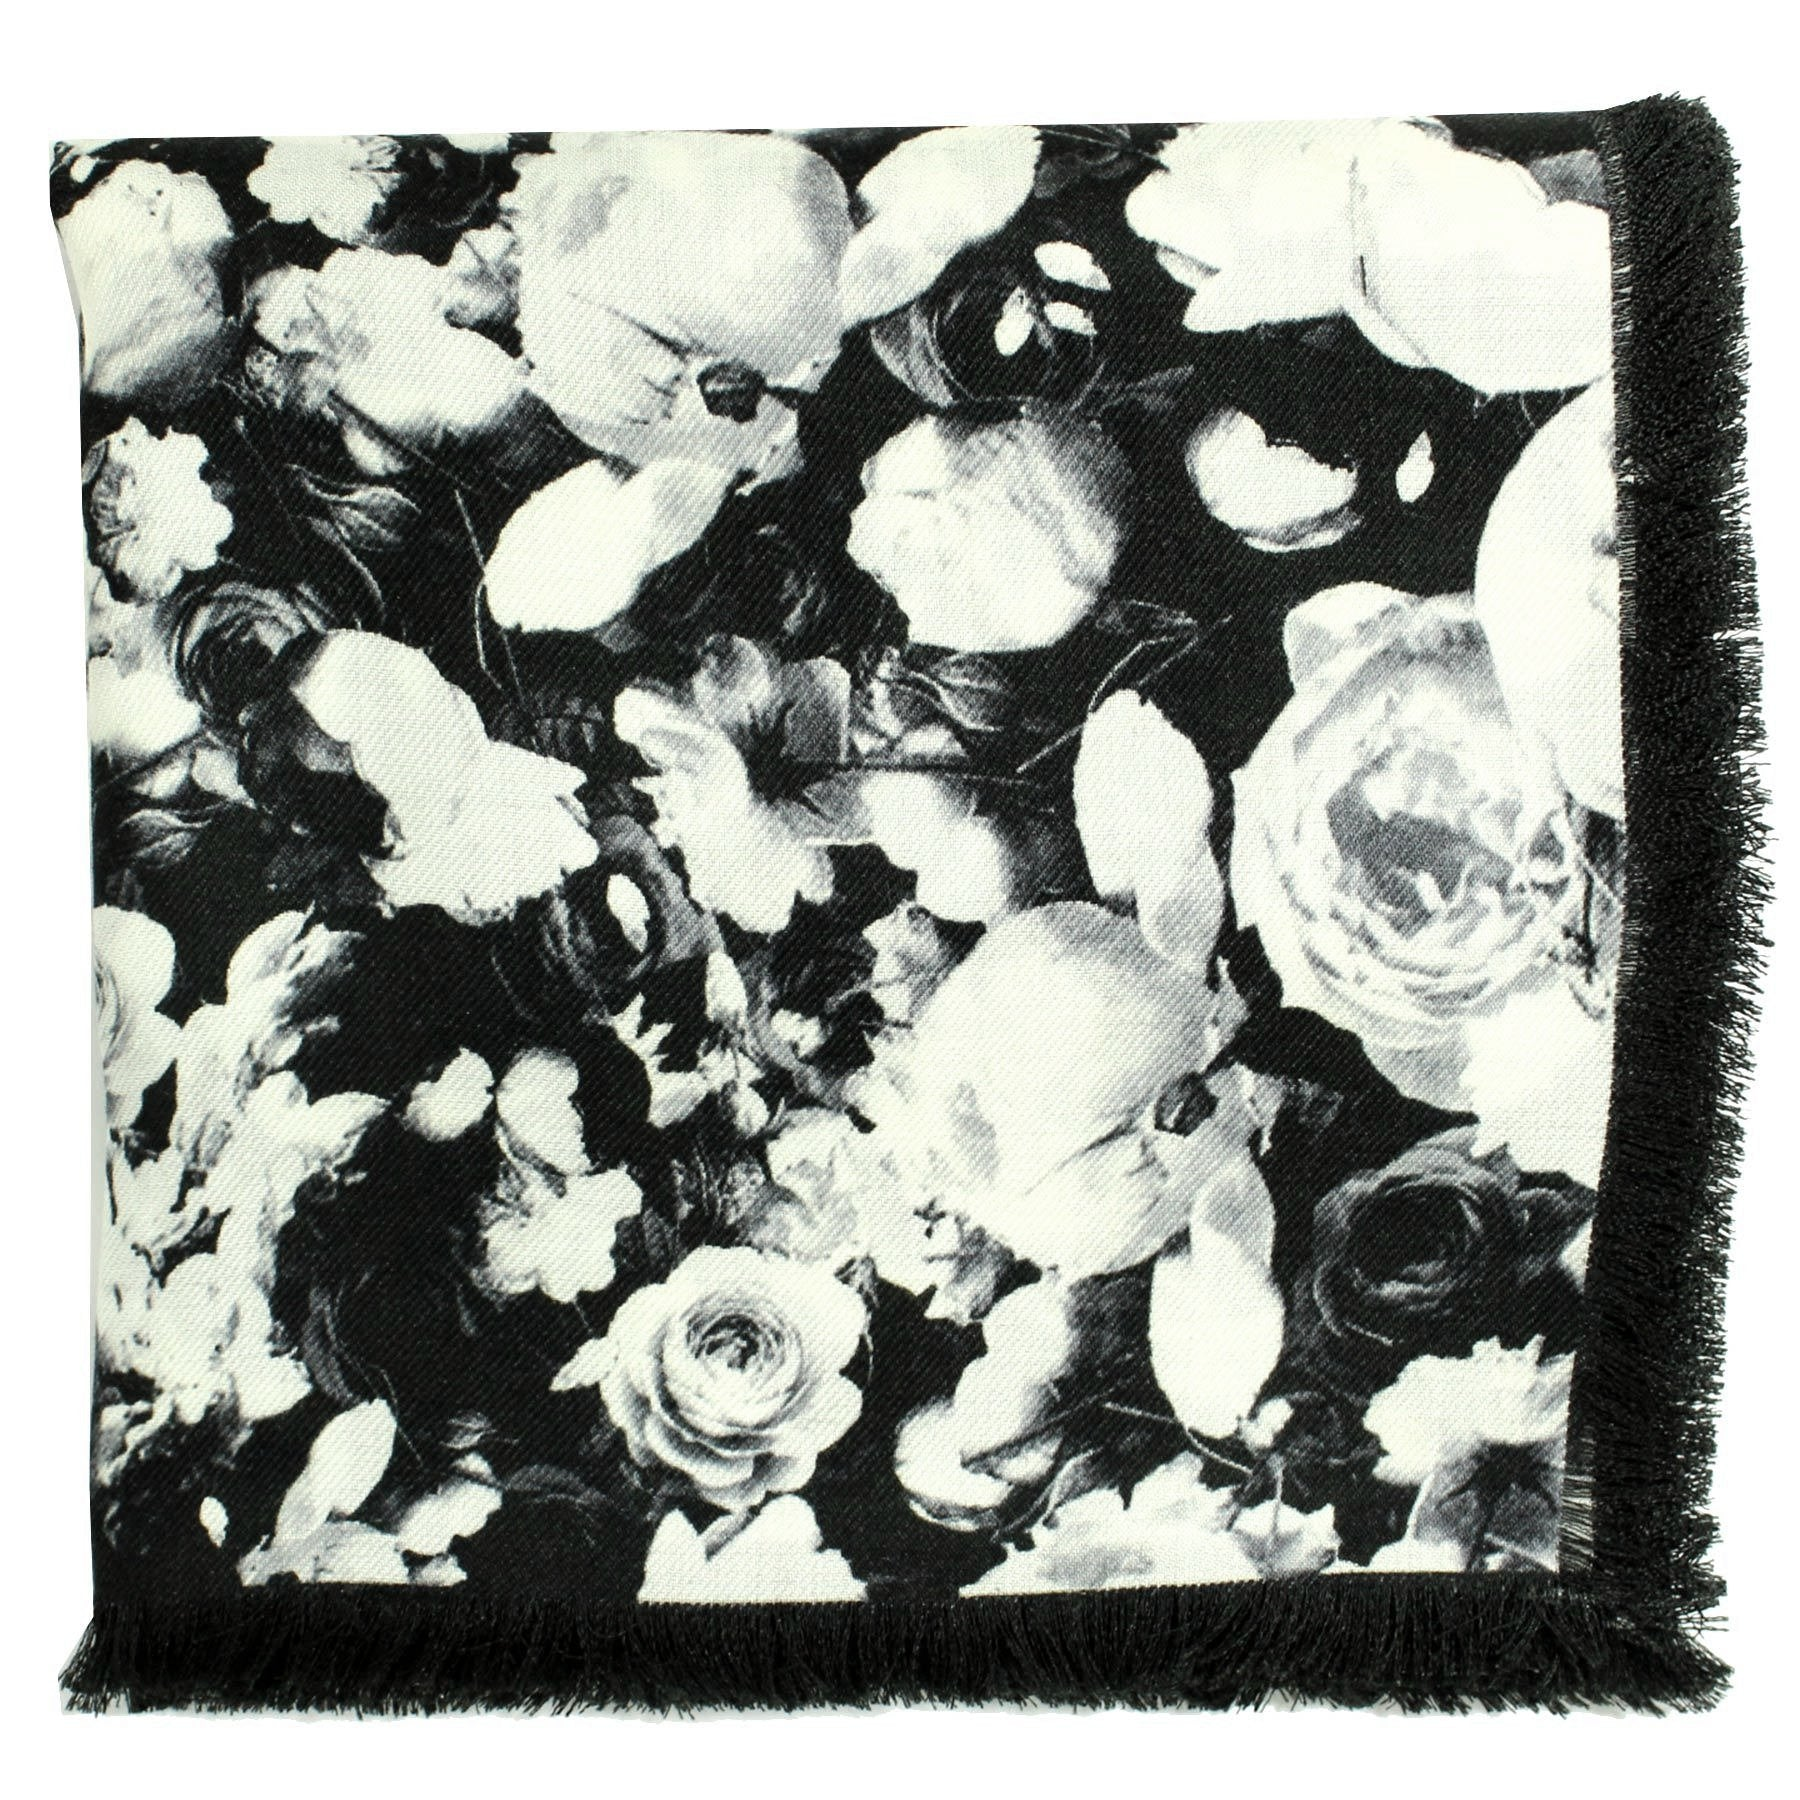 Givenchy Scarf Black White Floral Design